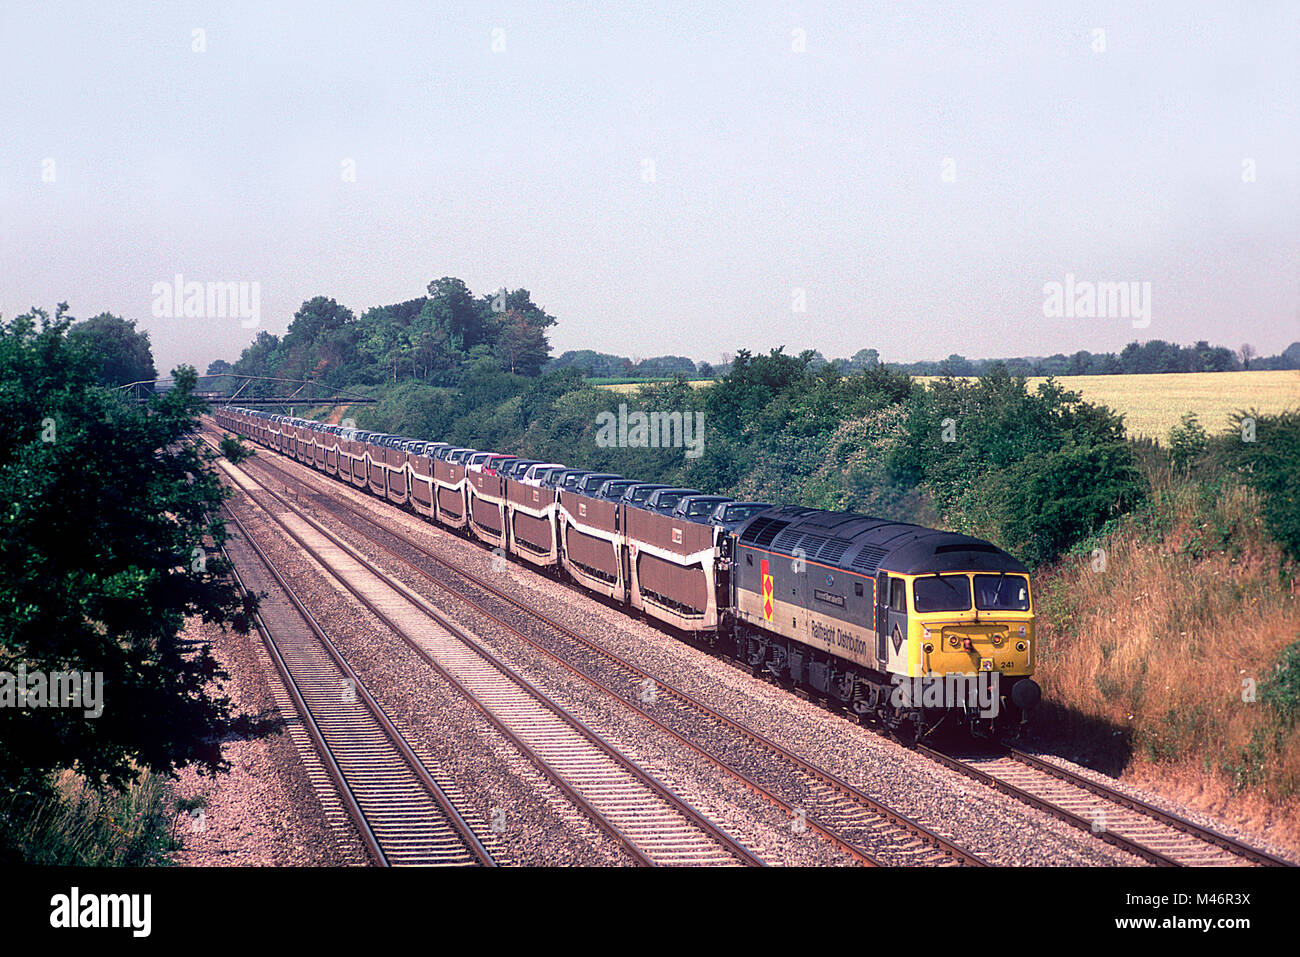 A class 47 diesel locomotive number 47241 working a loaded car train at  Shottesbrooke in Berkshire on the 20th July 1996.